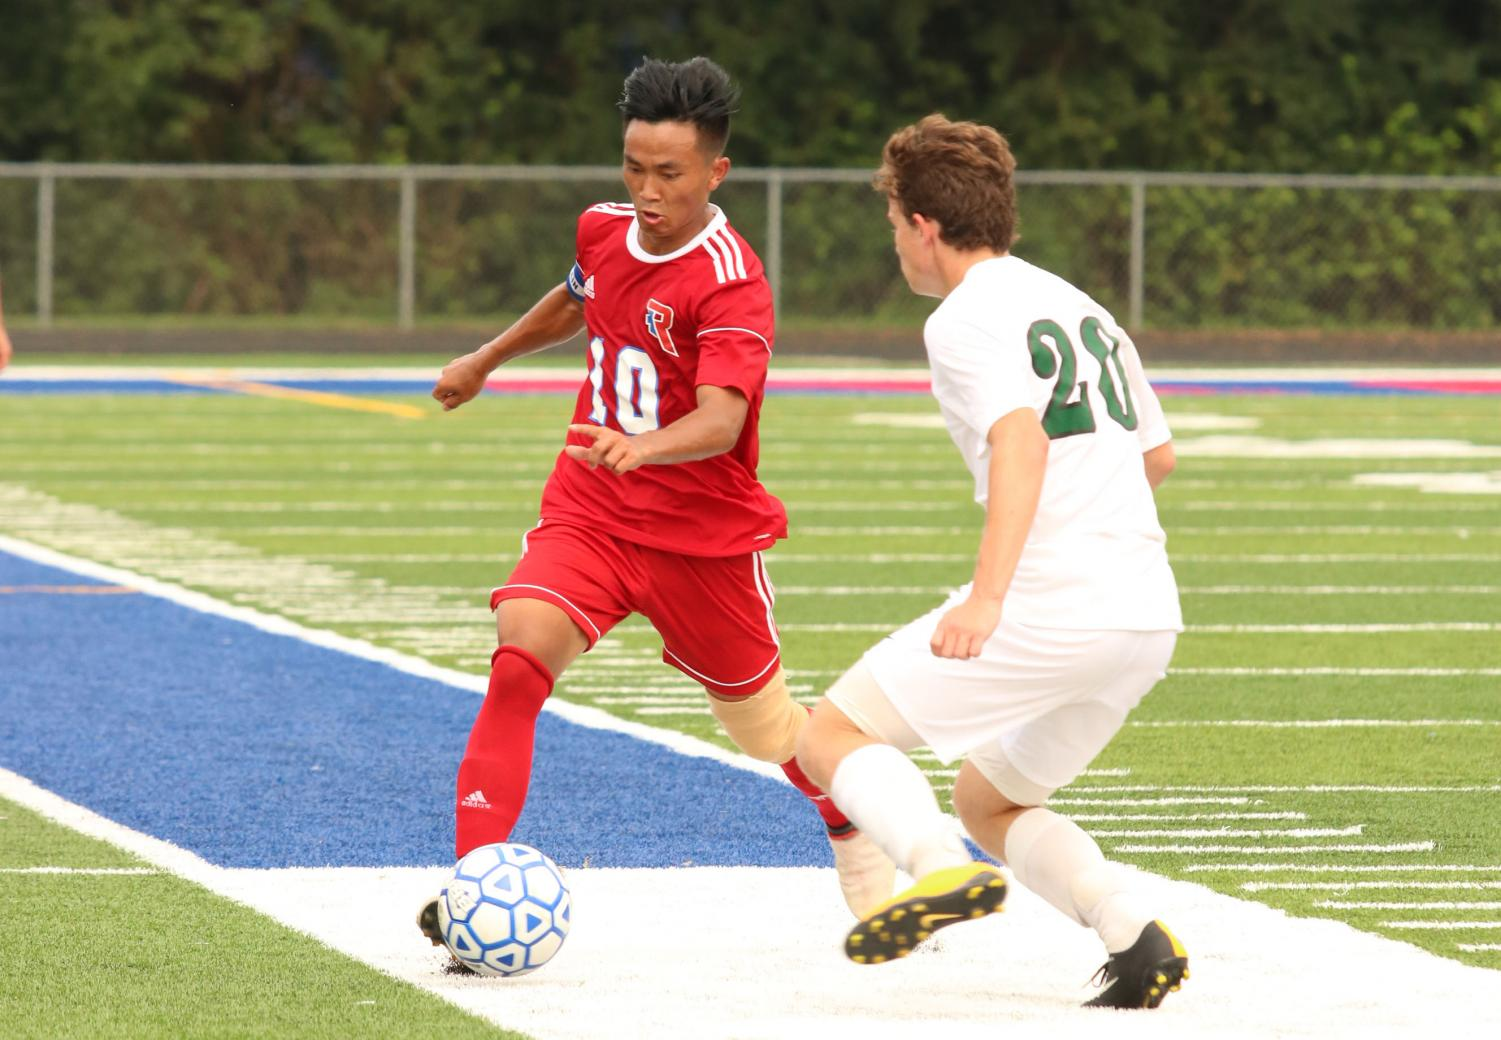 BRACE YOURSELVES: Robert Thang dribbles down the field in a game against Covenant Christian. Robert scored two goals for the Rebels and the team went on to win the game 4-1.